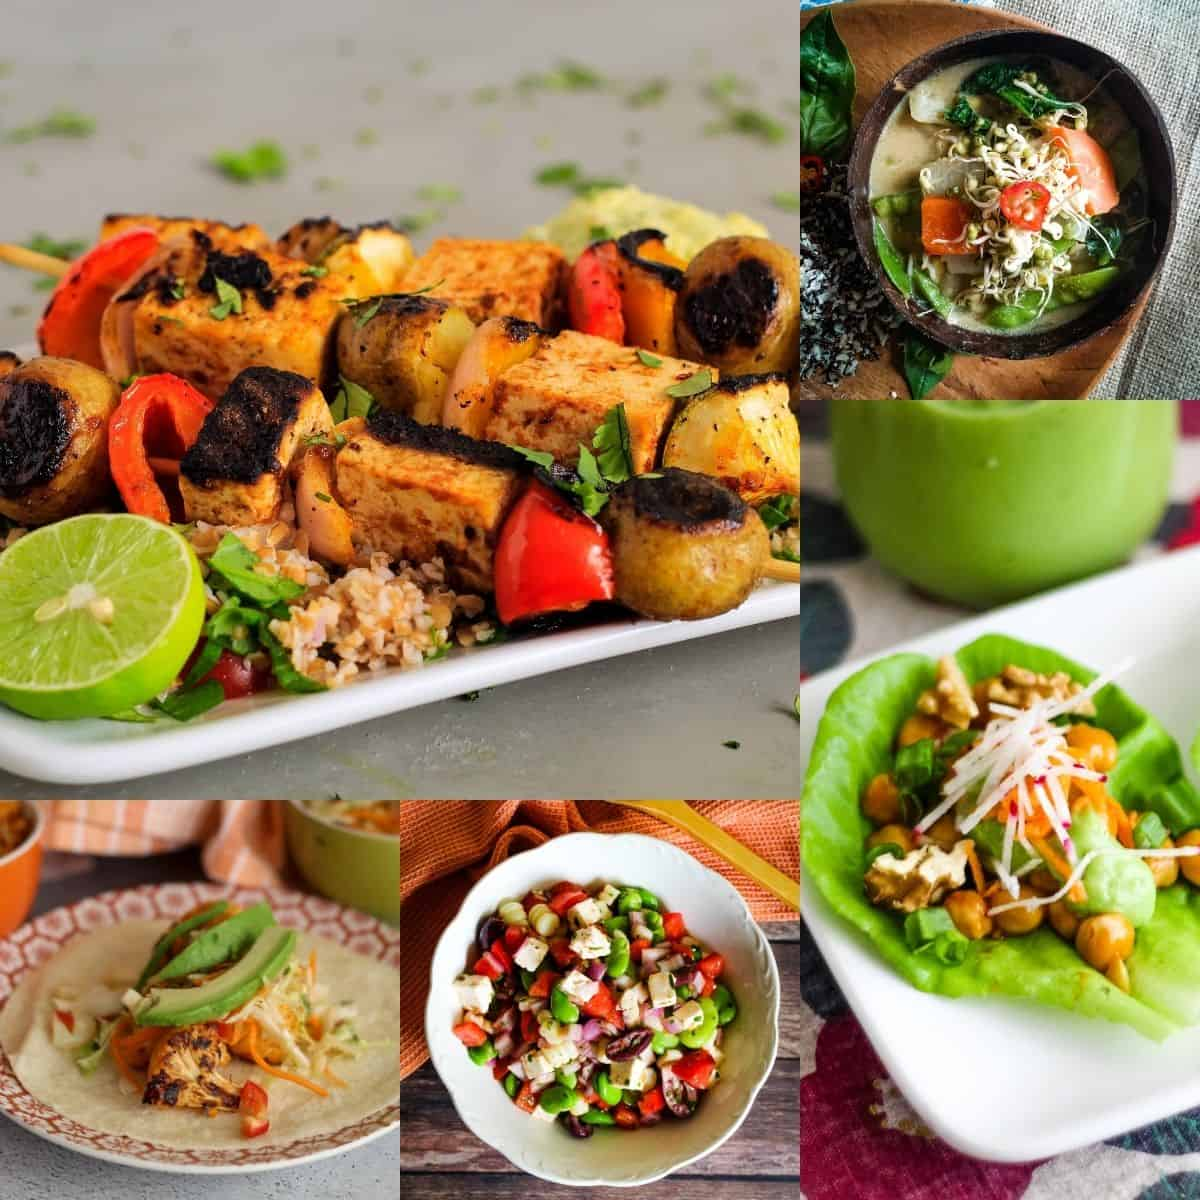 Spicy vegetarian recipes photo collage